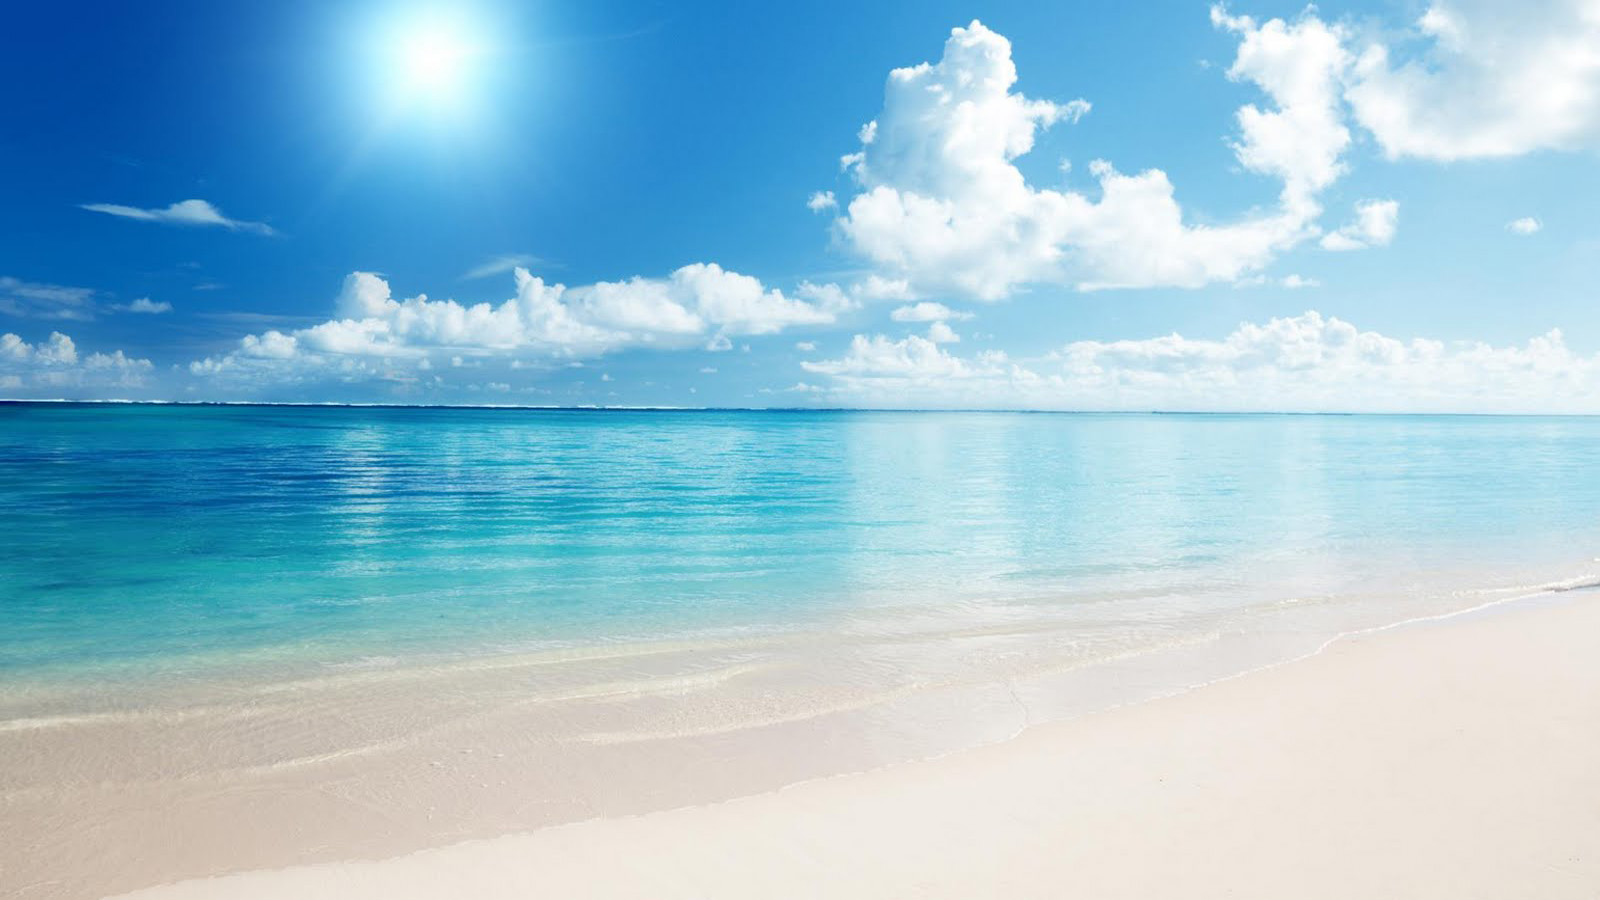 Beach Wallpaper High Definition 1600x900